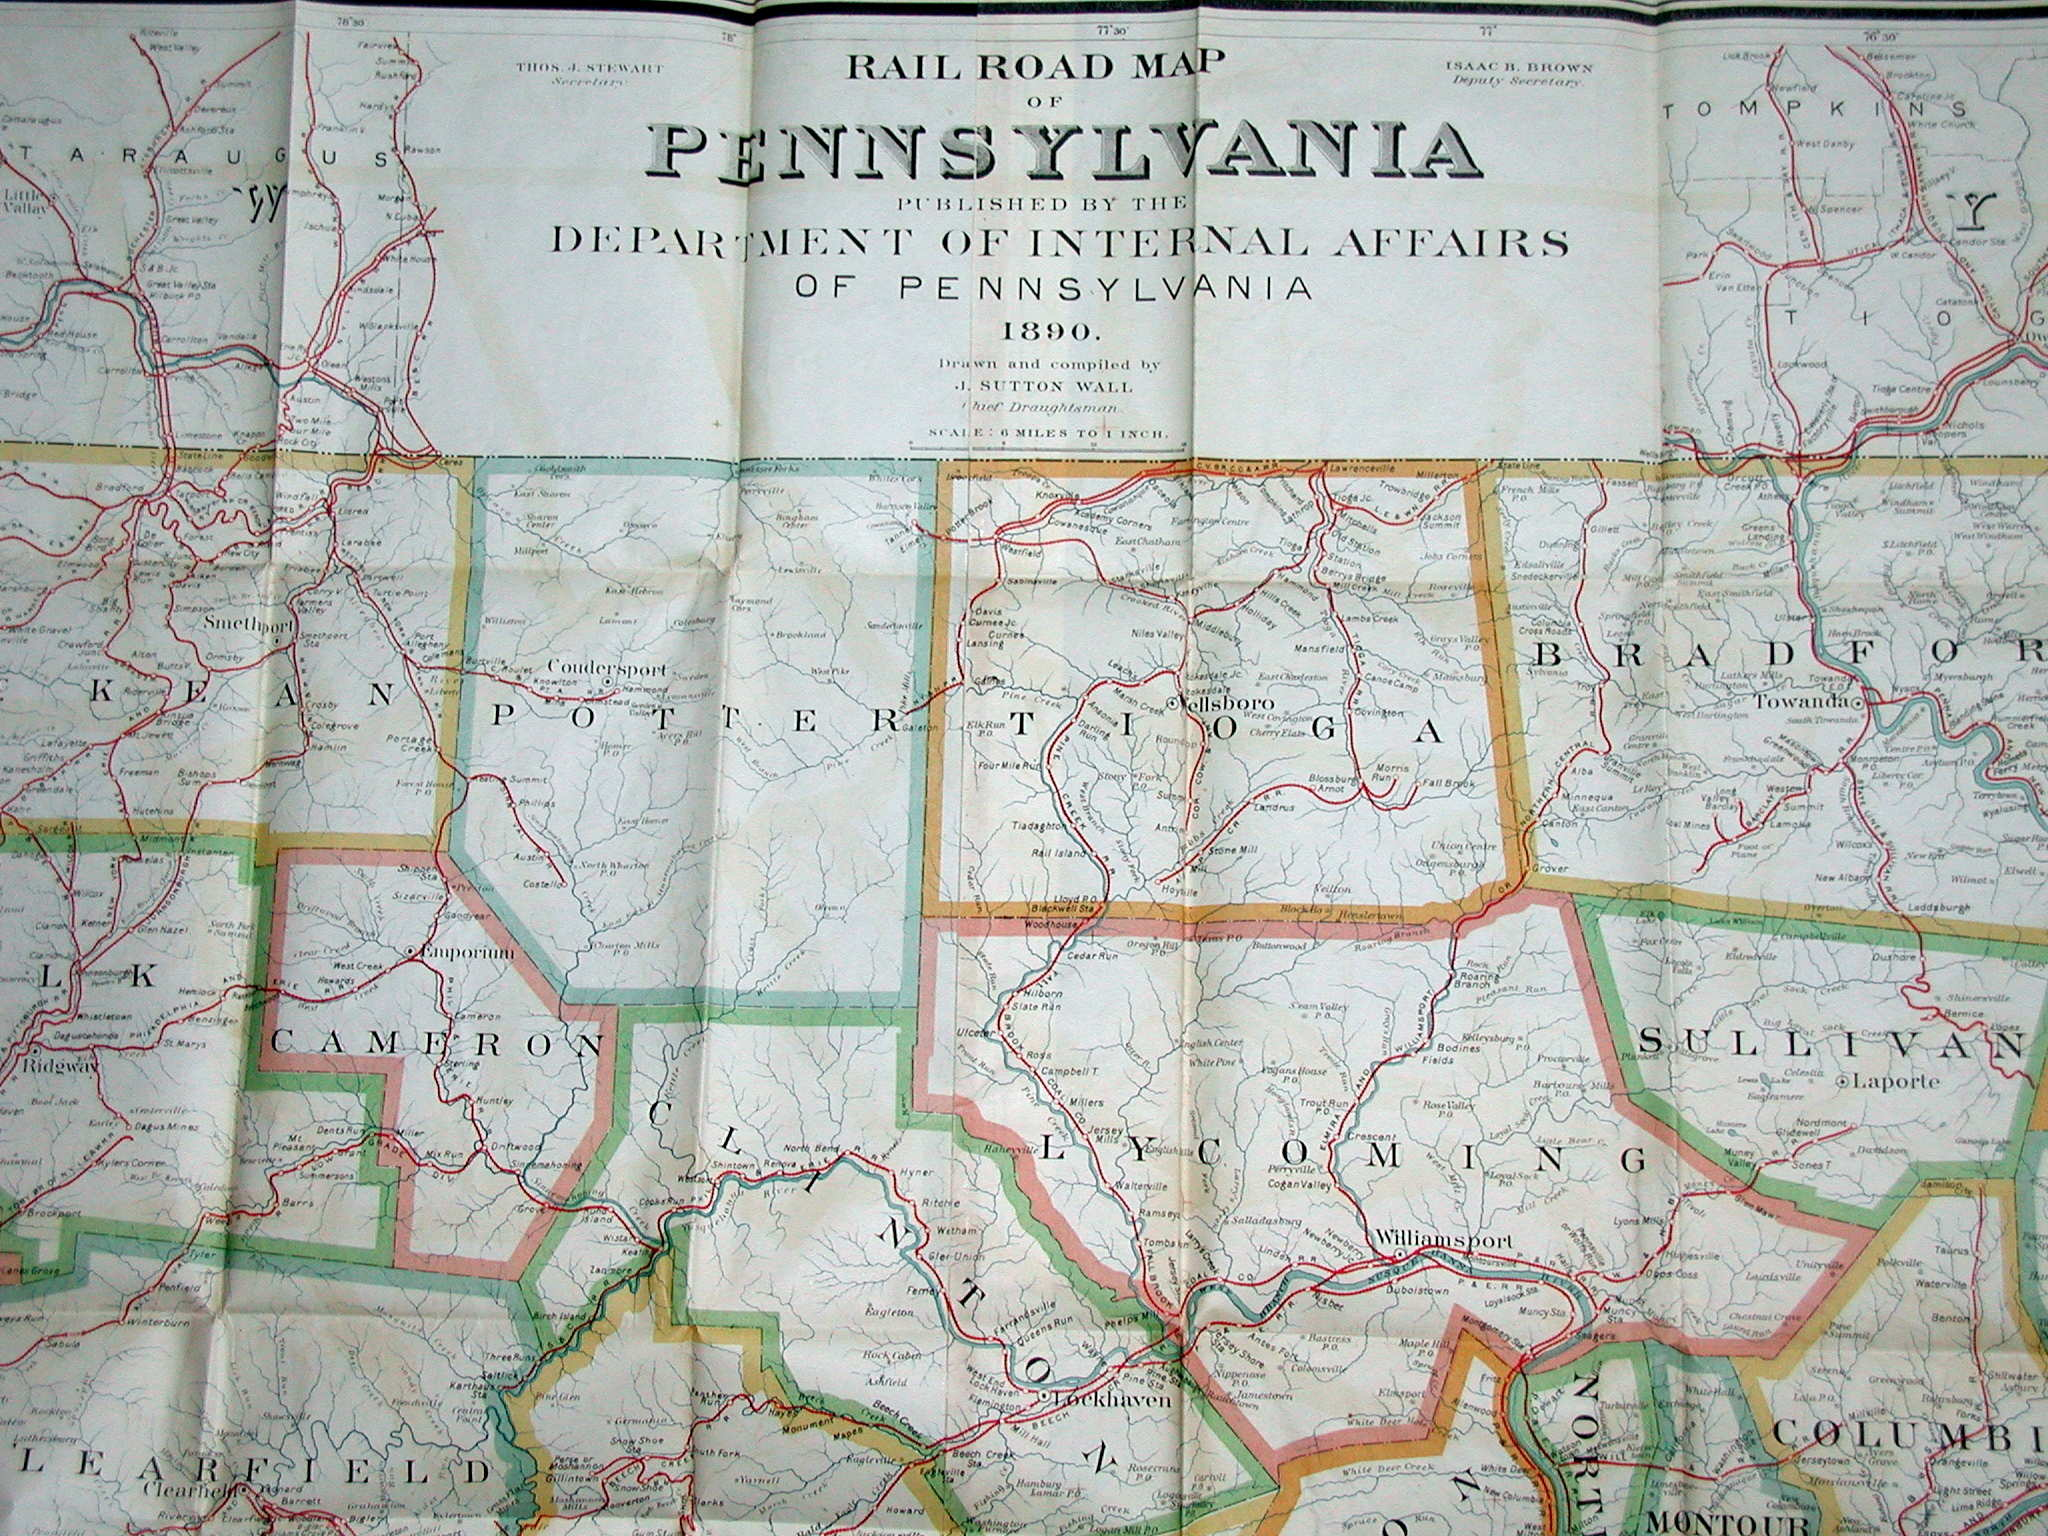 his 1890 railroad map of